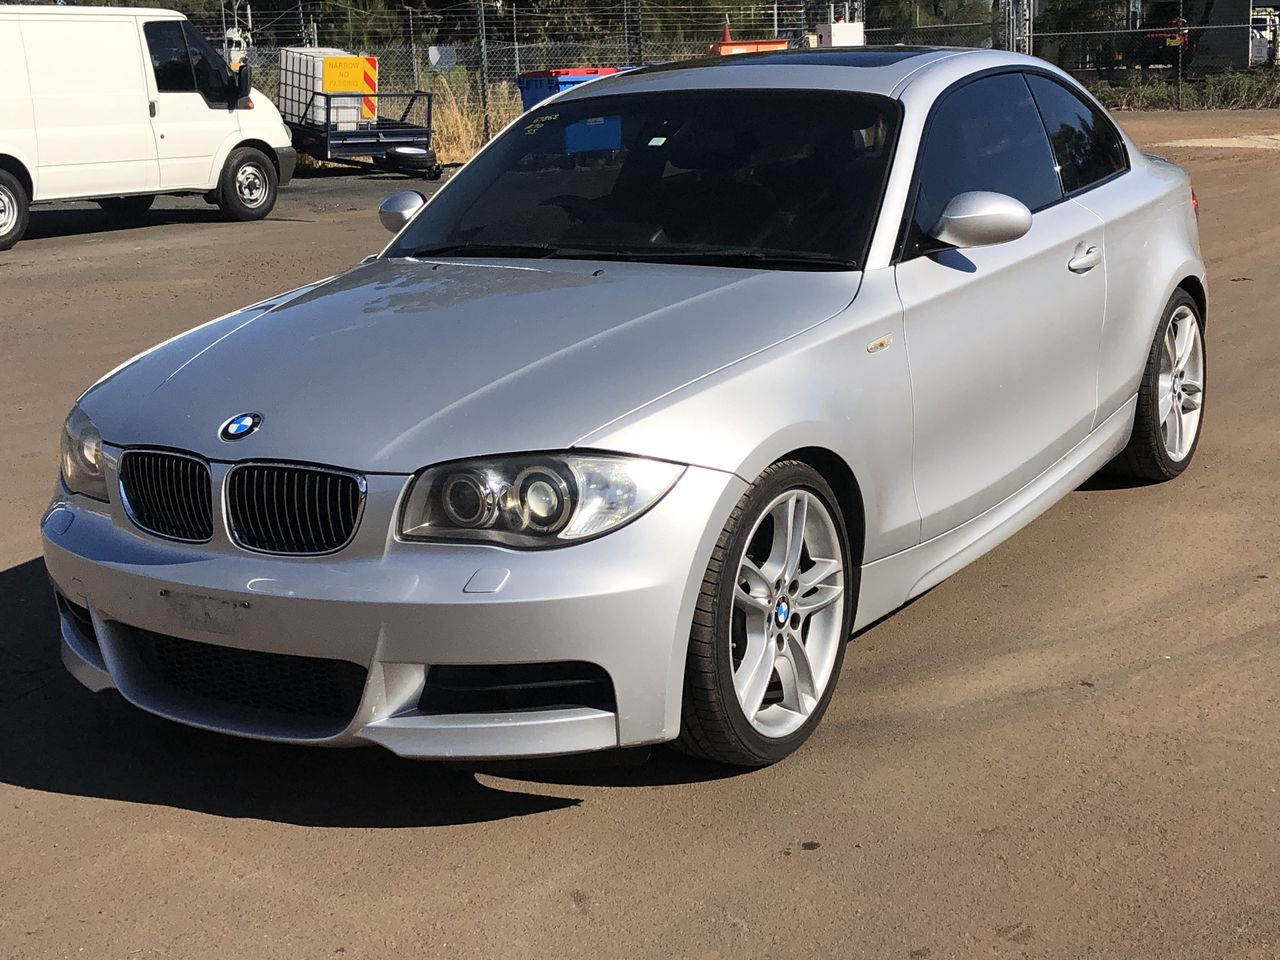 BMW 1 35i SPORT E82 Automatic Coupe